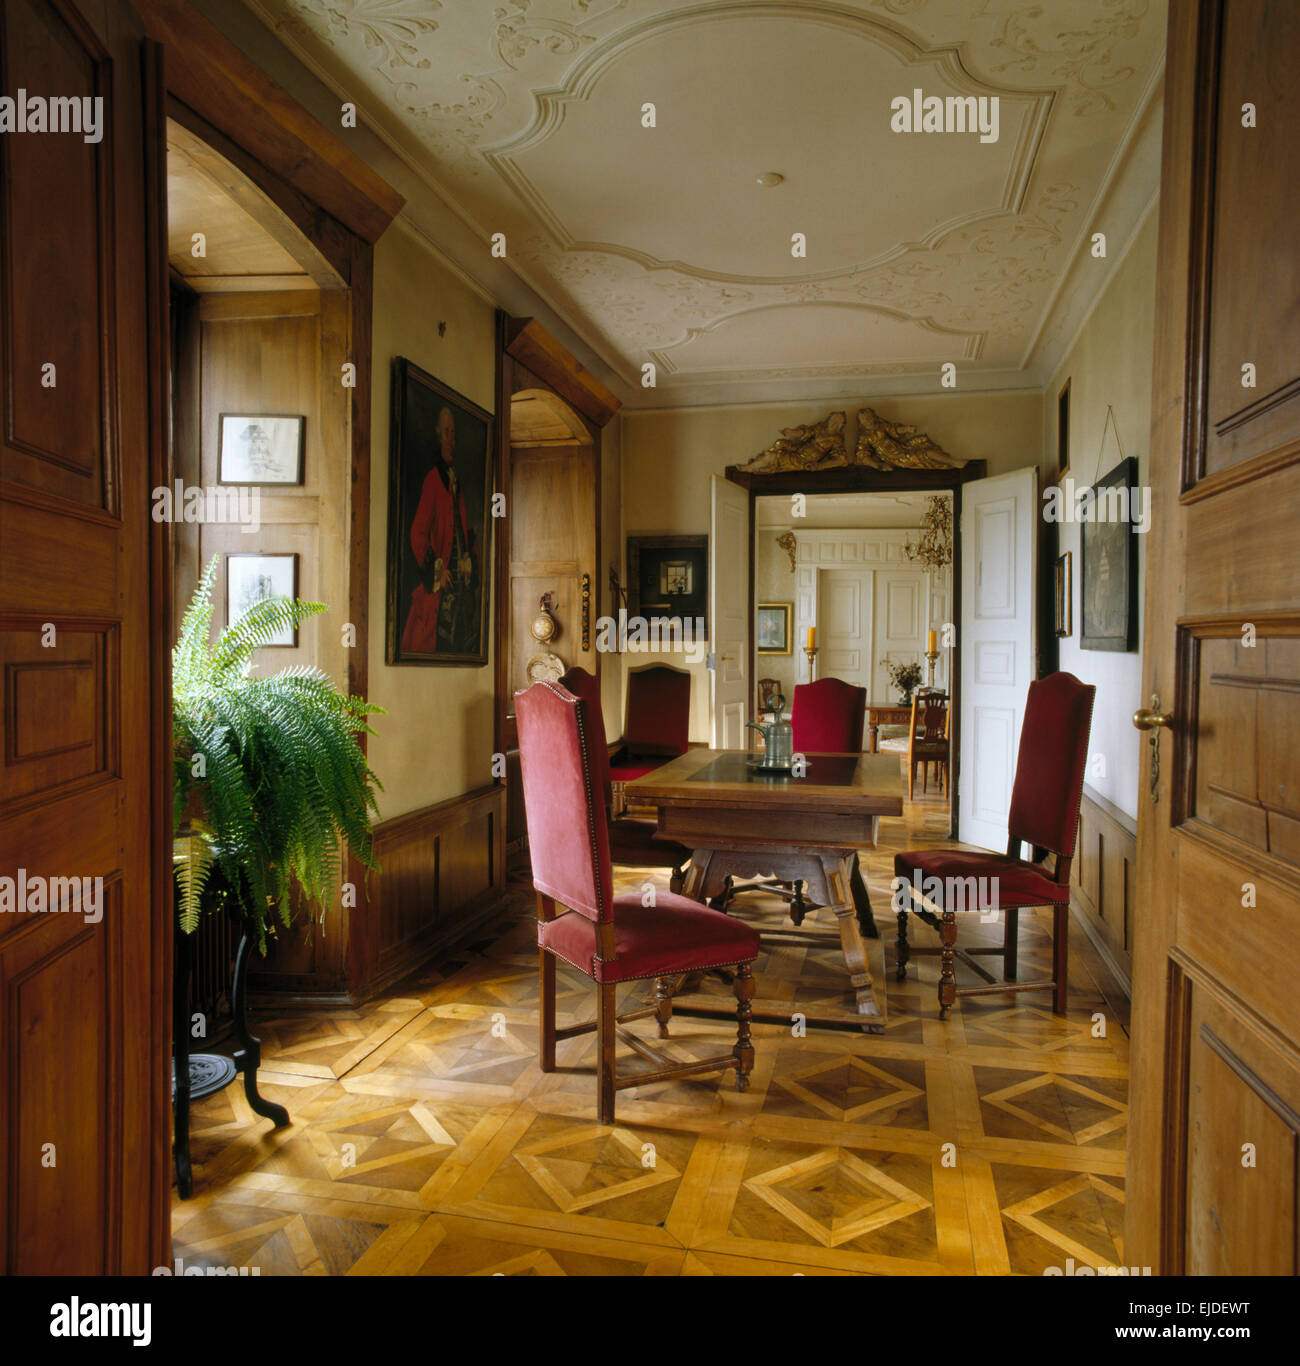 Parquet Flooring And Antique Dining Table Chairs In Period Hall Room